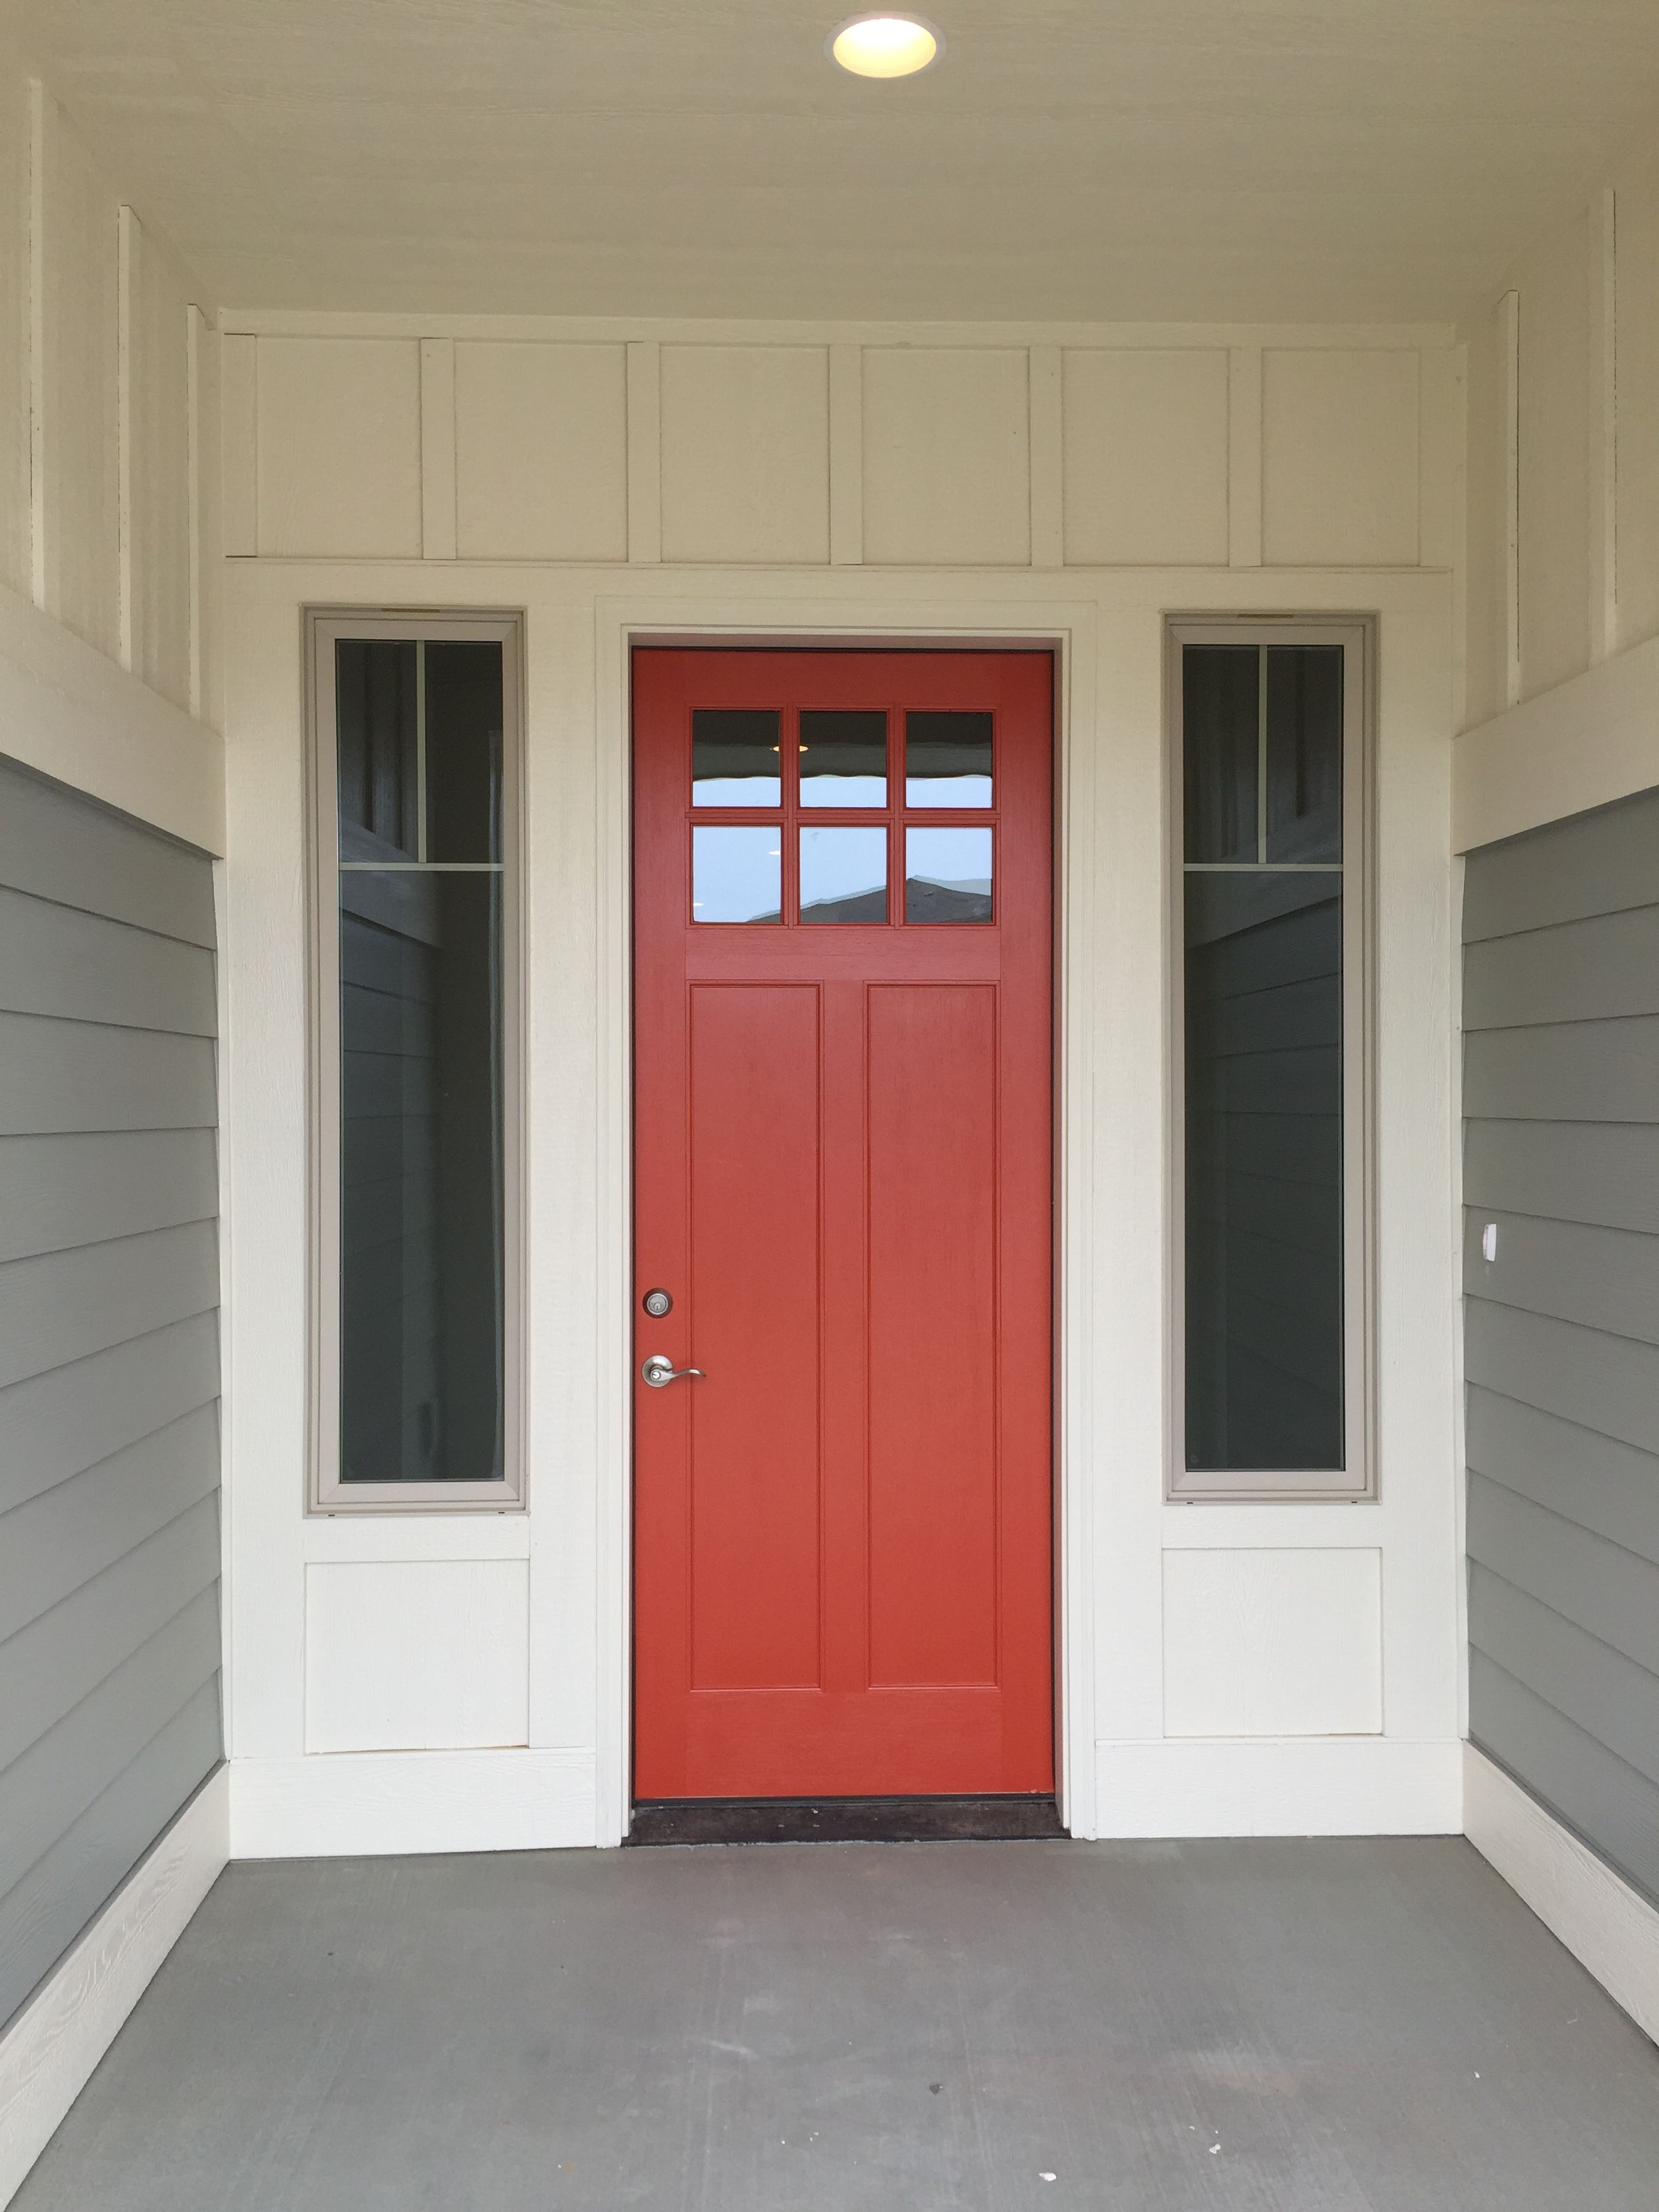 sherwin williams 6629 jalape o washington house in 2019 front door paint colors painted. Black Bedroom Furniture Sets. Home Design Ideas